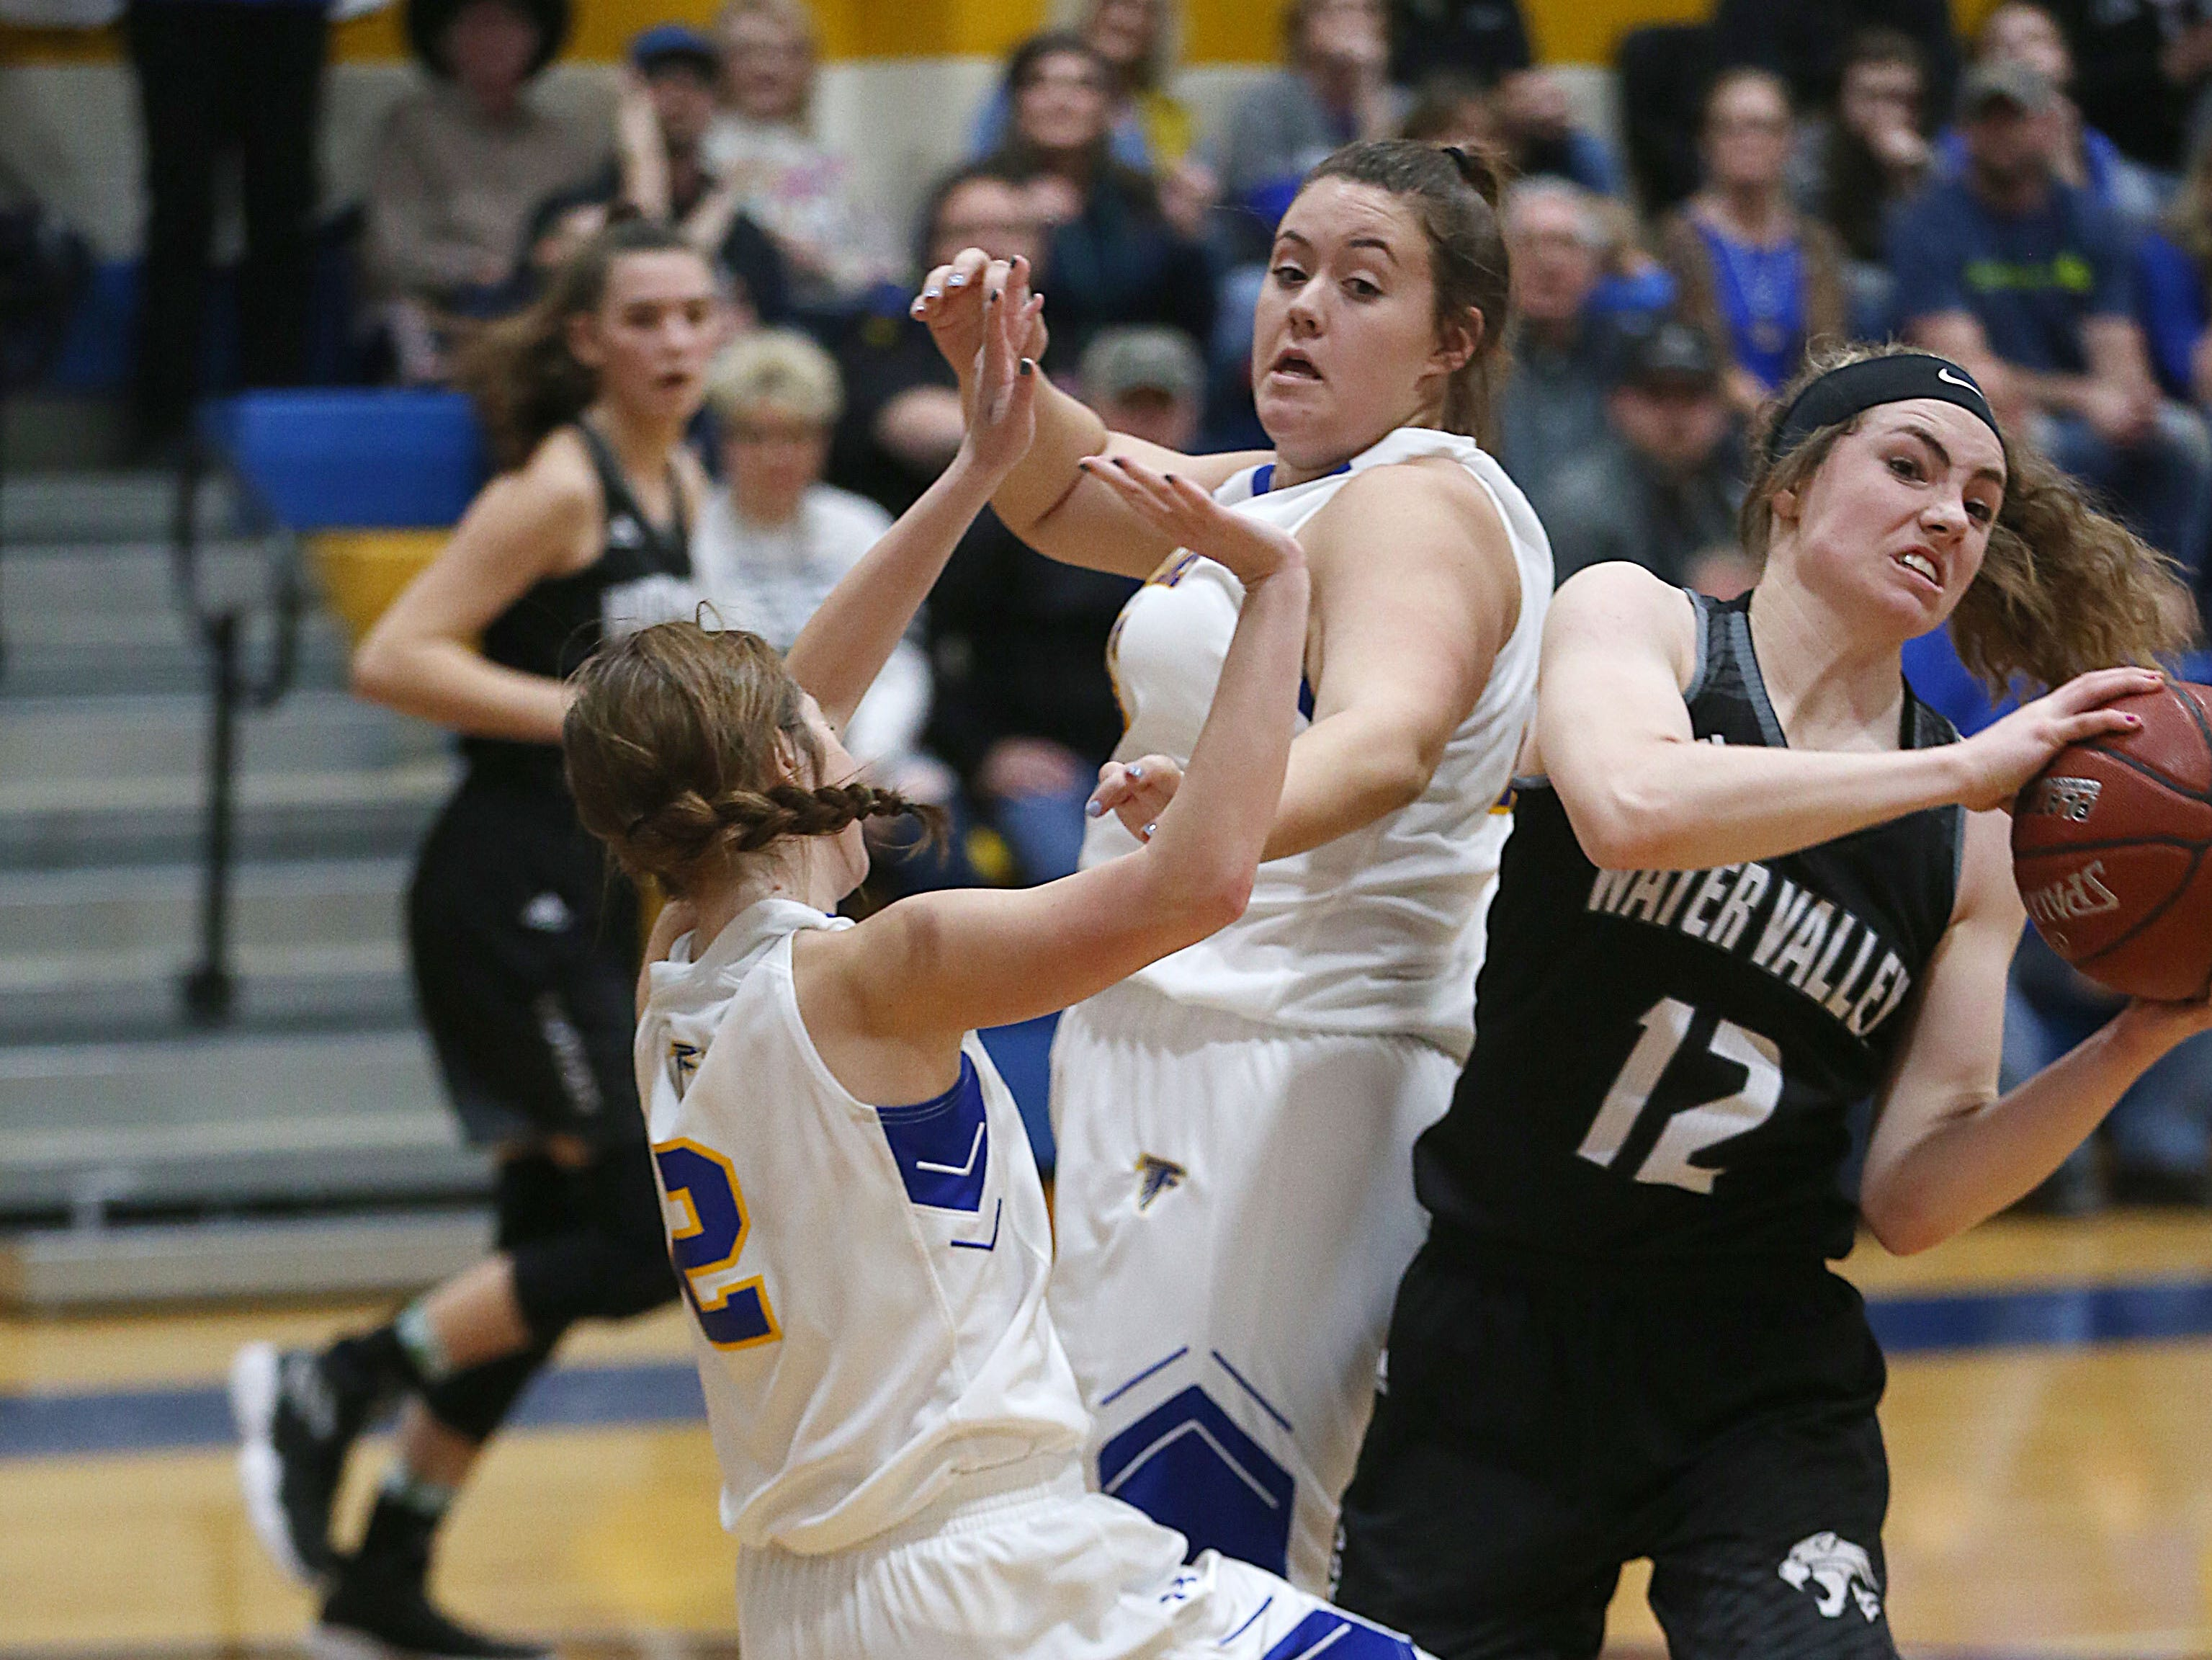 Water Valley's Kalysta Minton-Holland (#12) fights off Veribest players Tuesday, Jan. 8, 2019 to gain control of the ball during their game in Veribest.